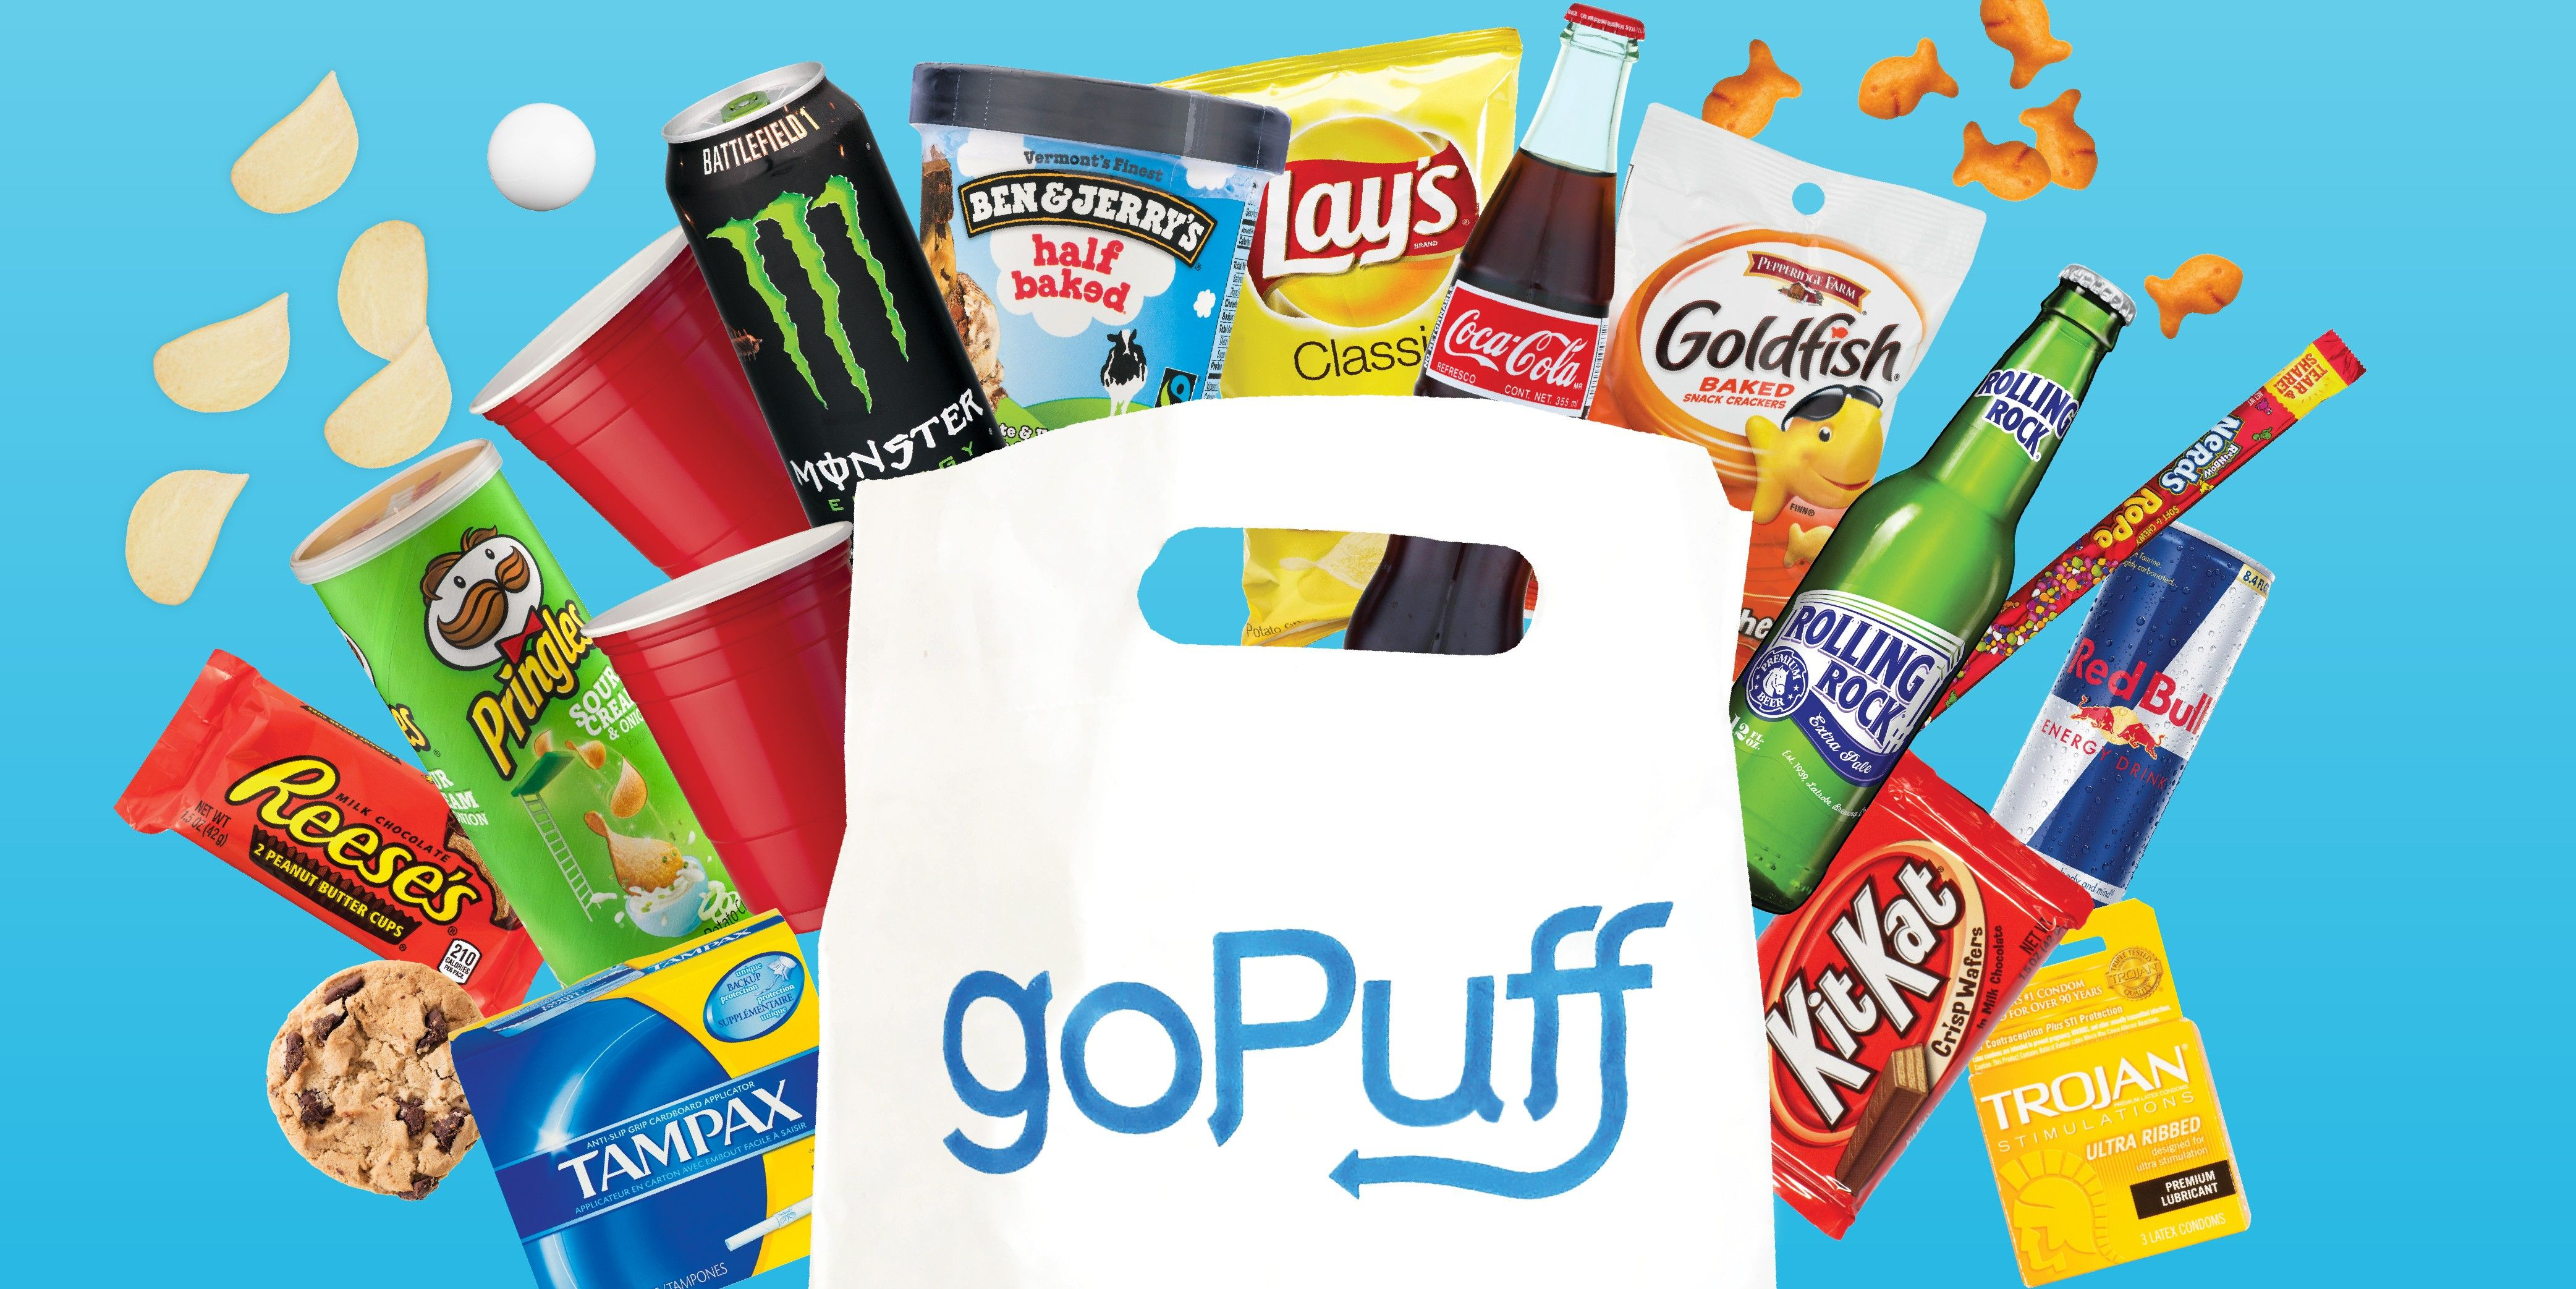 GoPuff Promo Code May 2020 in 2020 Promo codes coupon